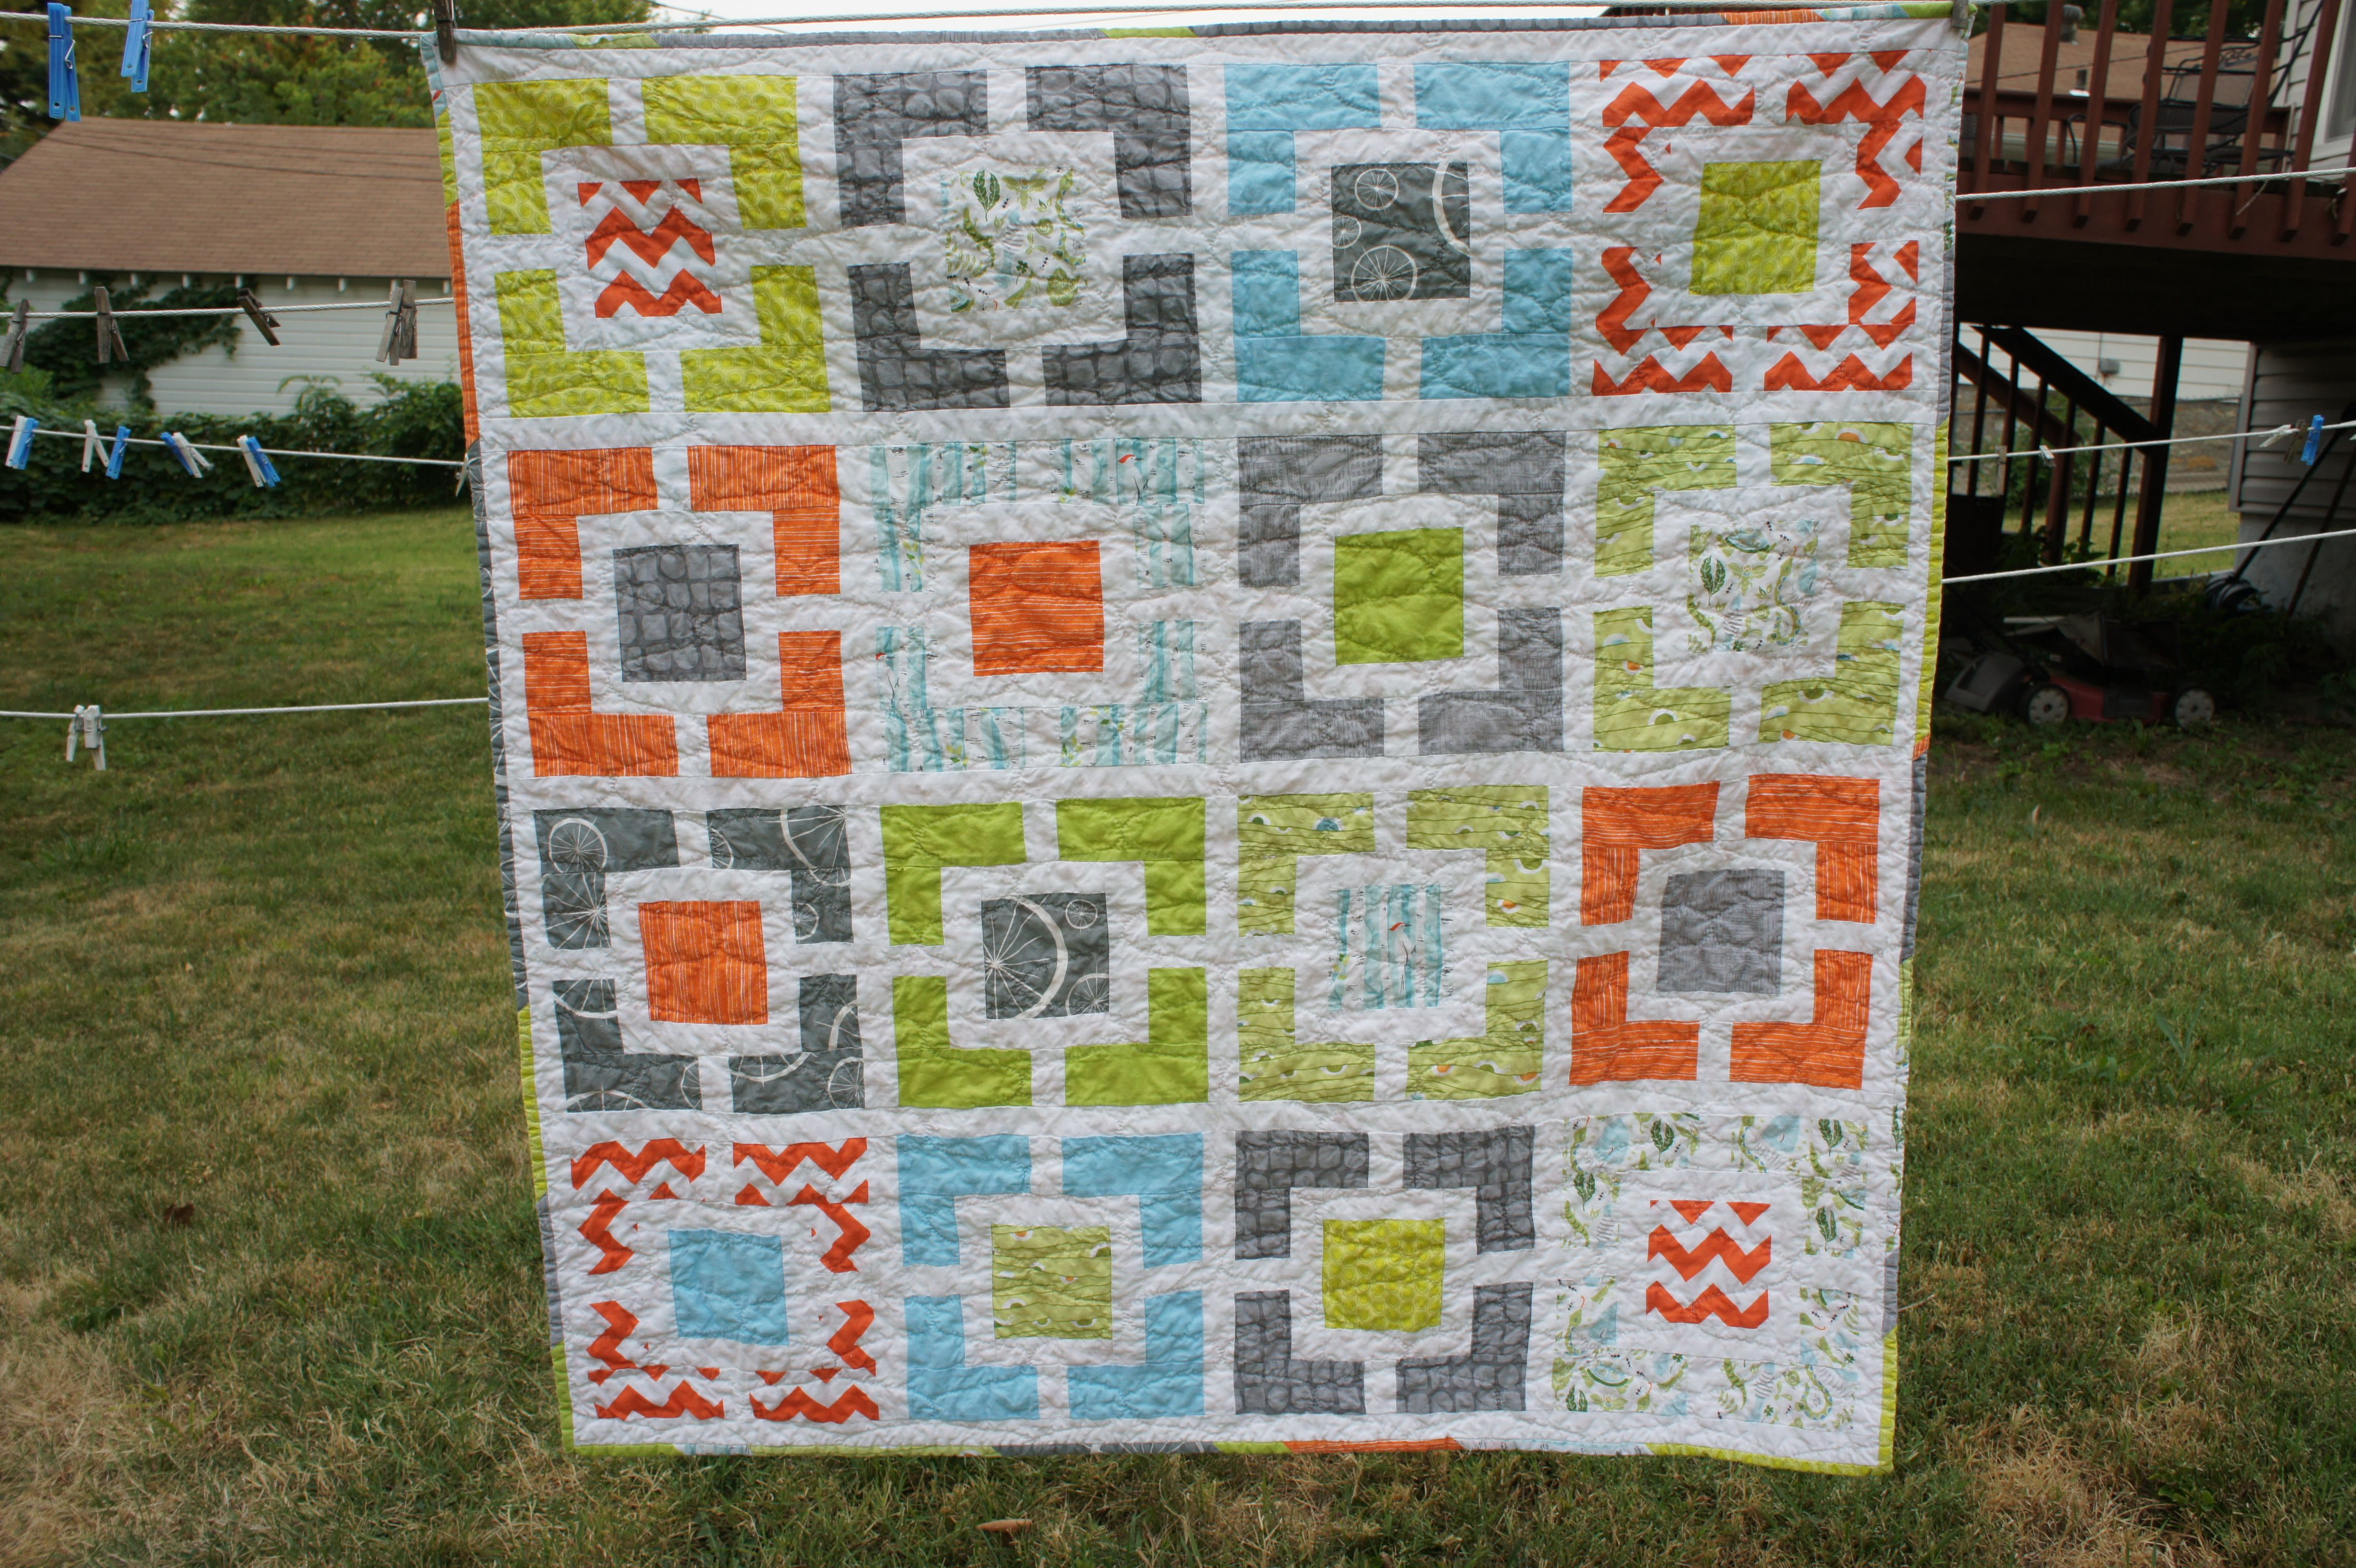 addition bear boy hand mountains etsy excited the quilt room my to nursery appliqu quilts share shop pin for baby latest blanket moose